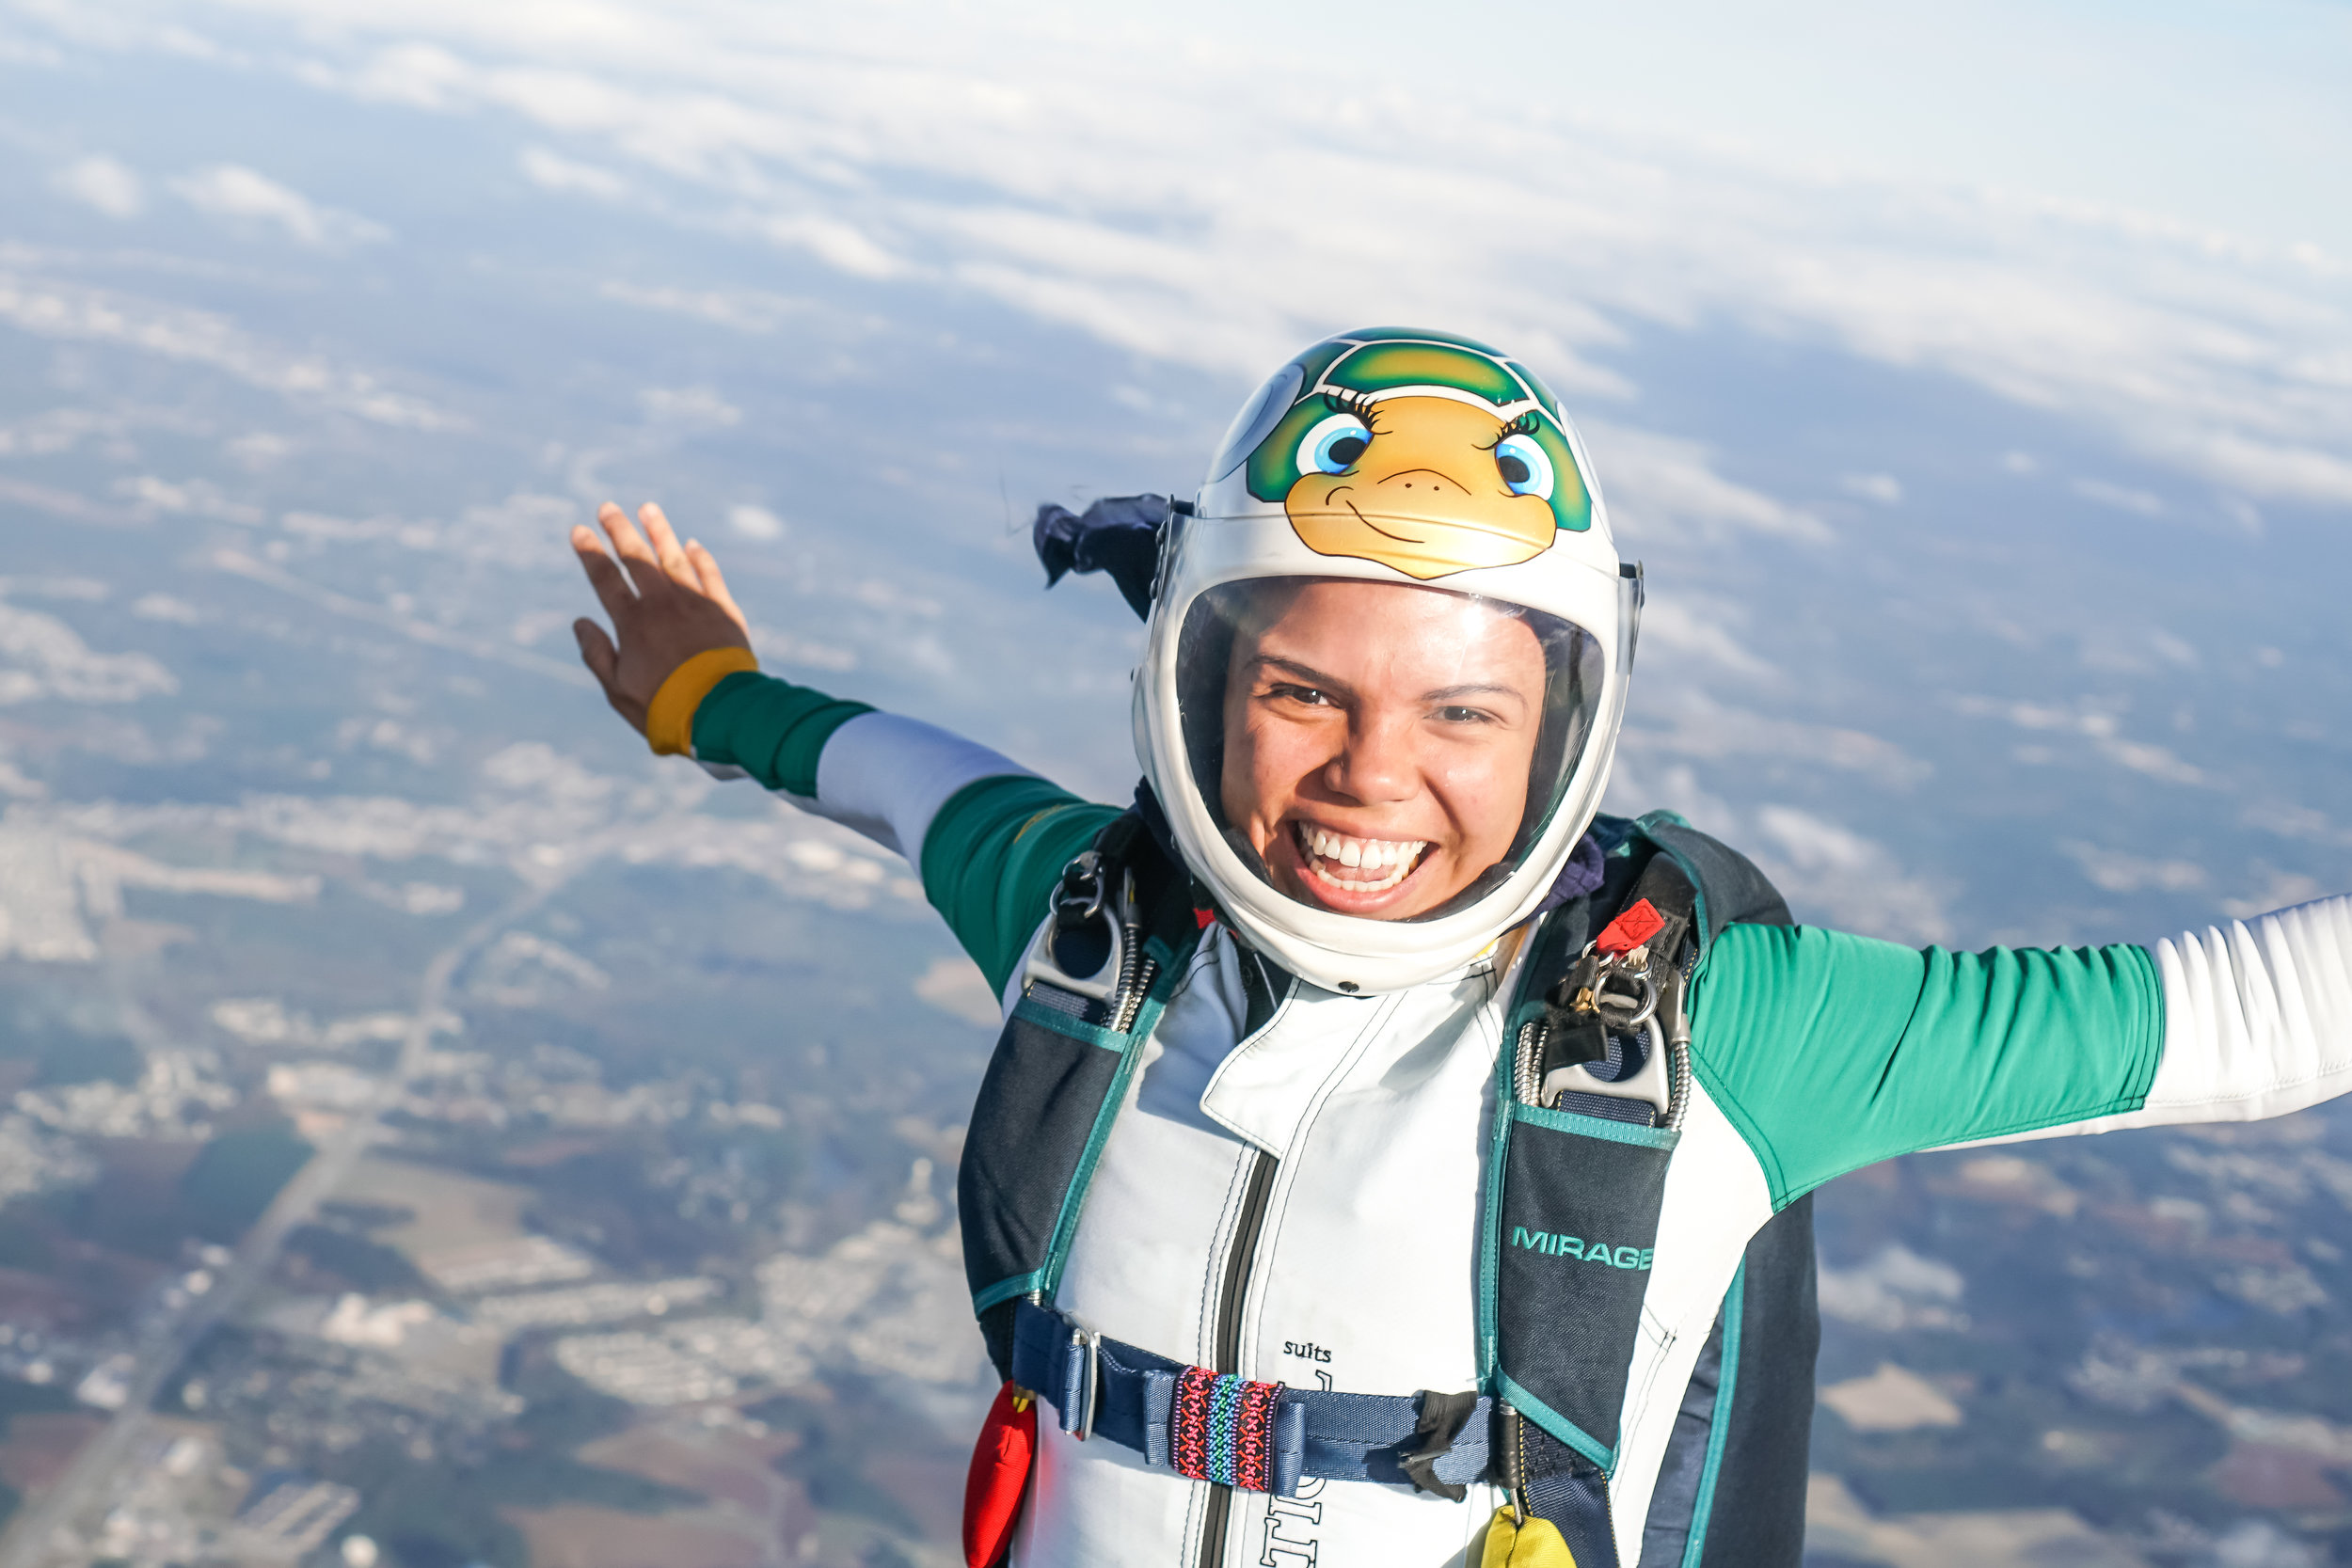 Covering her hair with a buff underneath her skydiving helmet helps protect her curls from 120mph winds.  Photo courtesy of Elliot Byrd